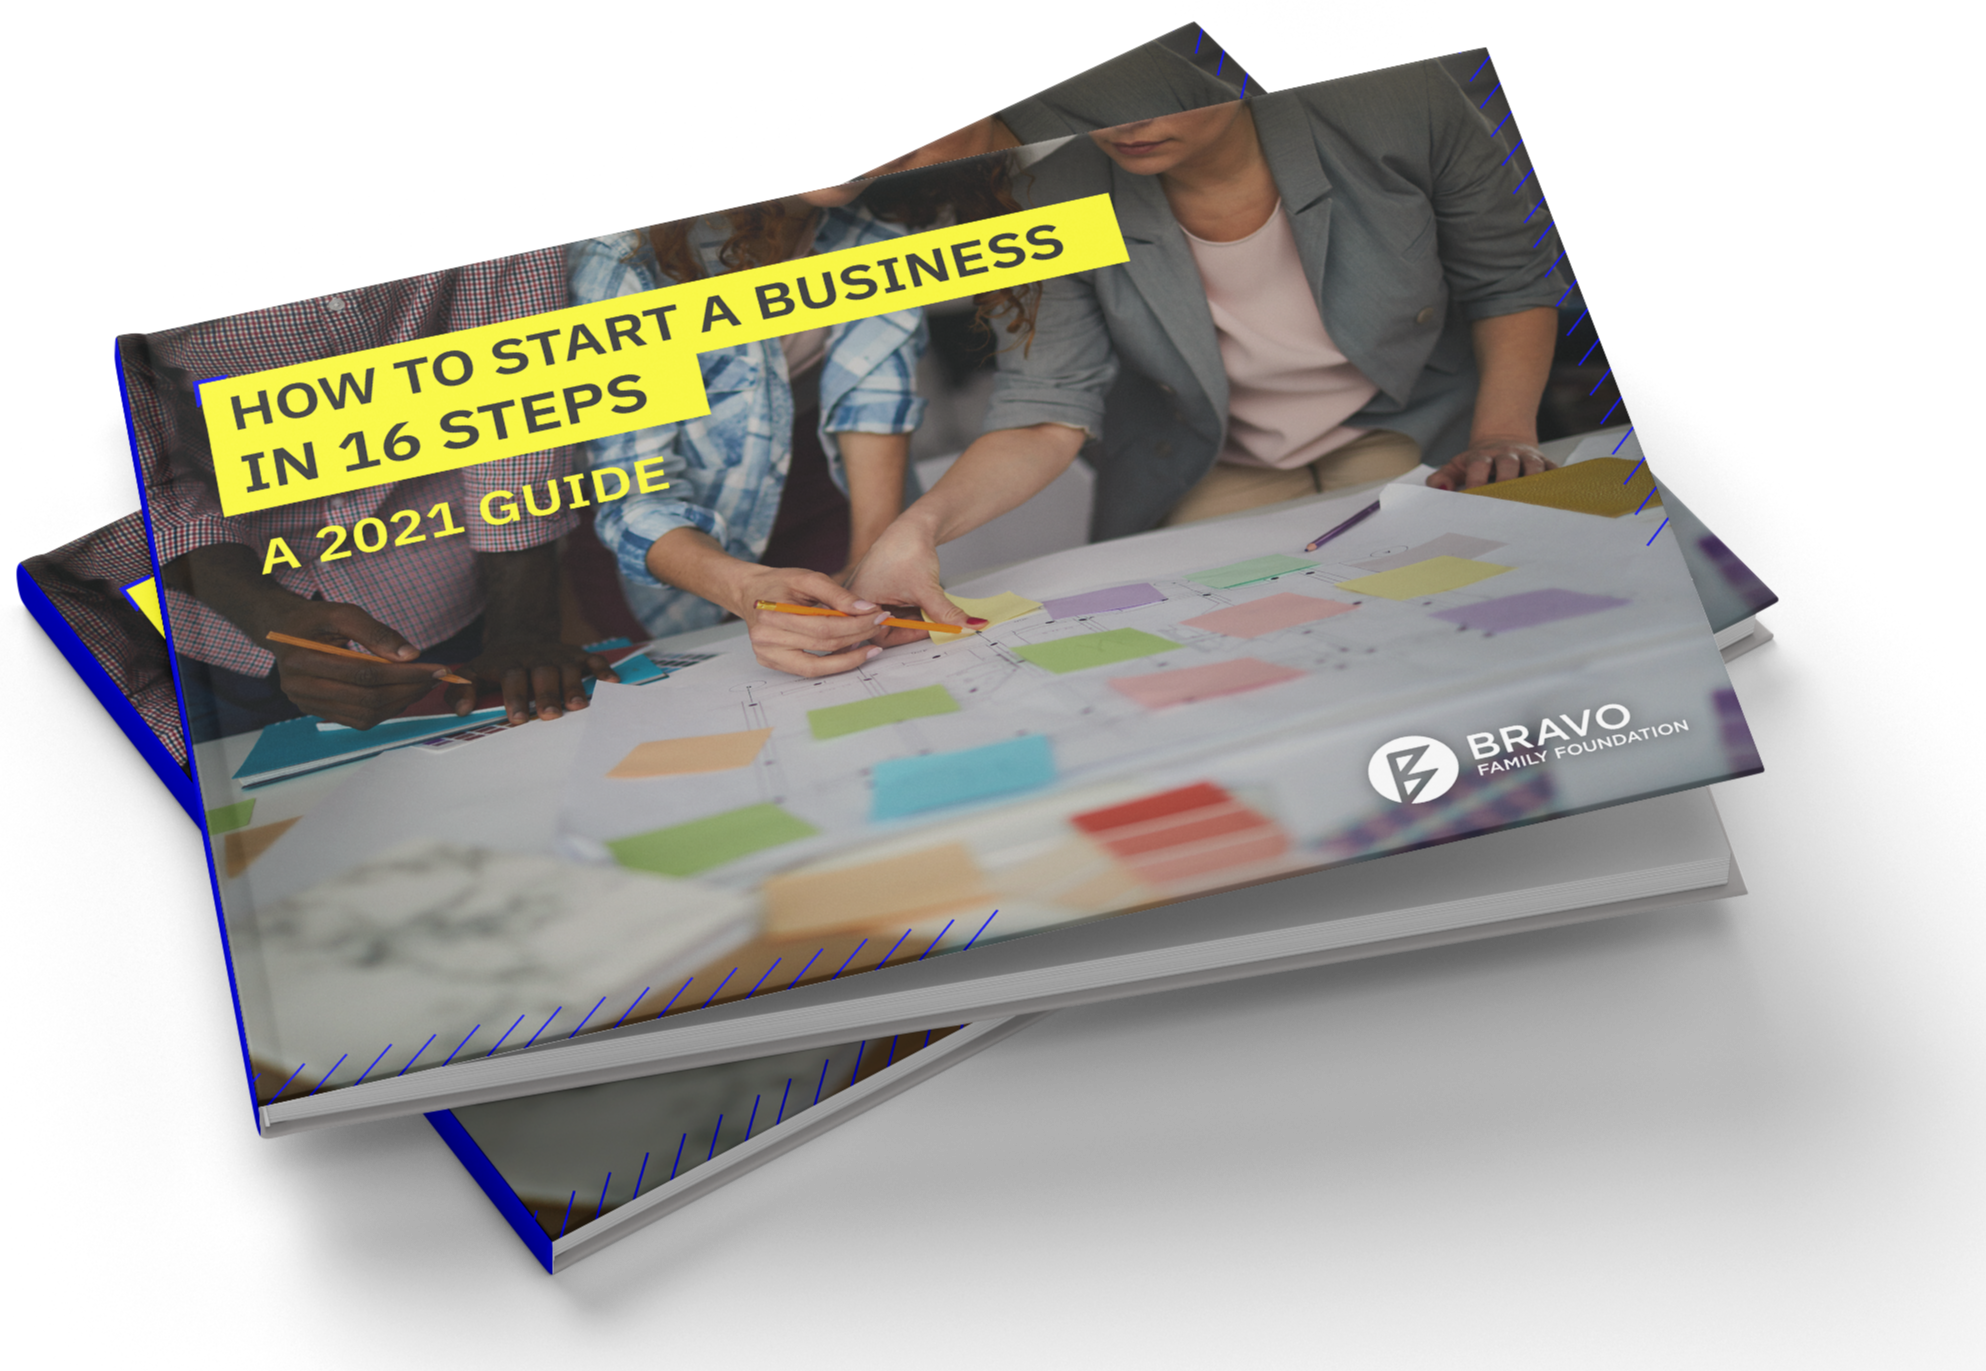 How to Start a Business in 16 Steps: A 2021 Guide